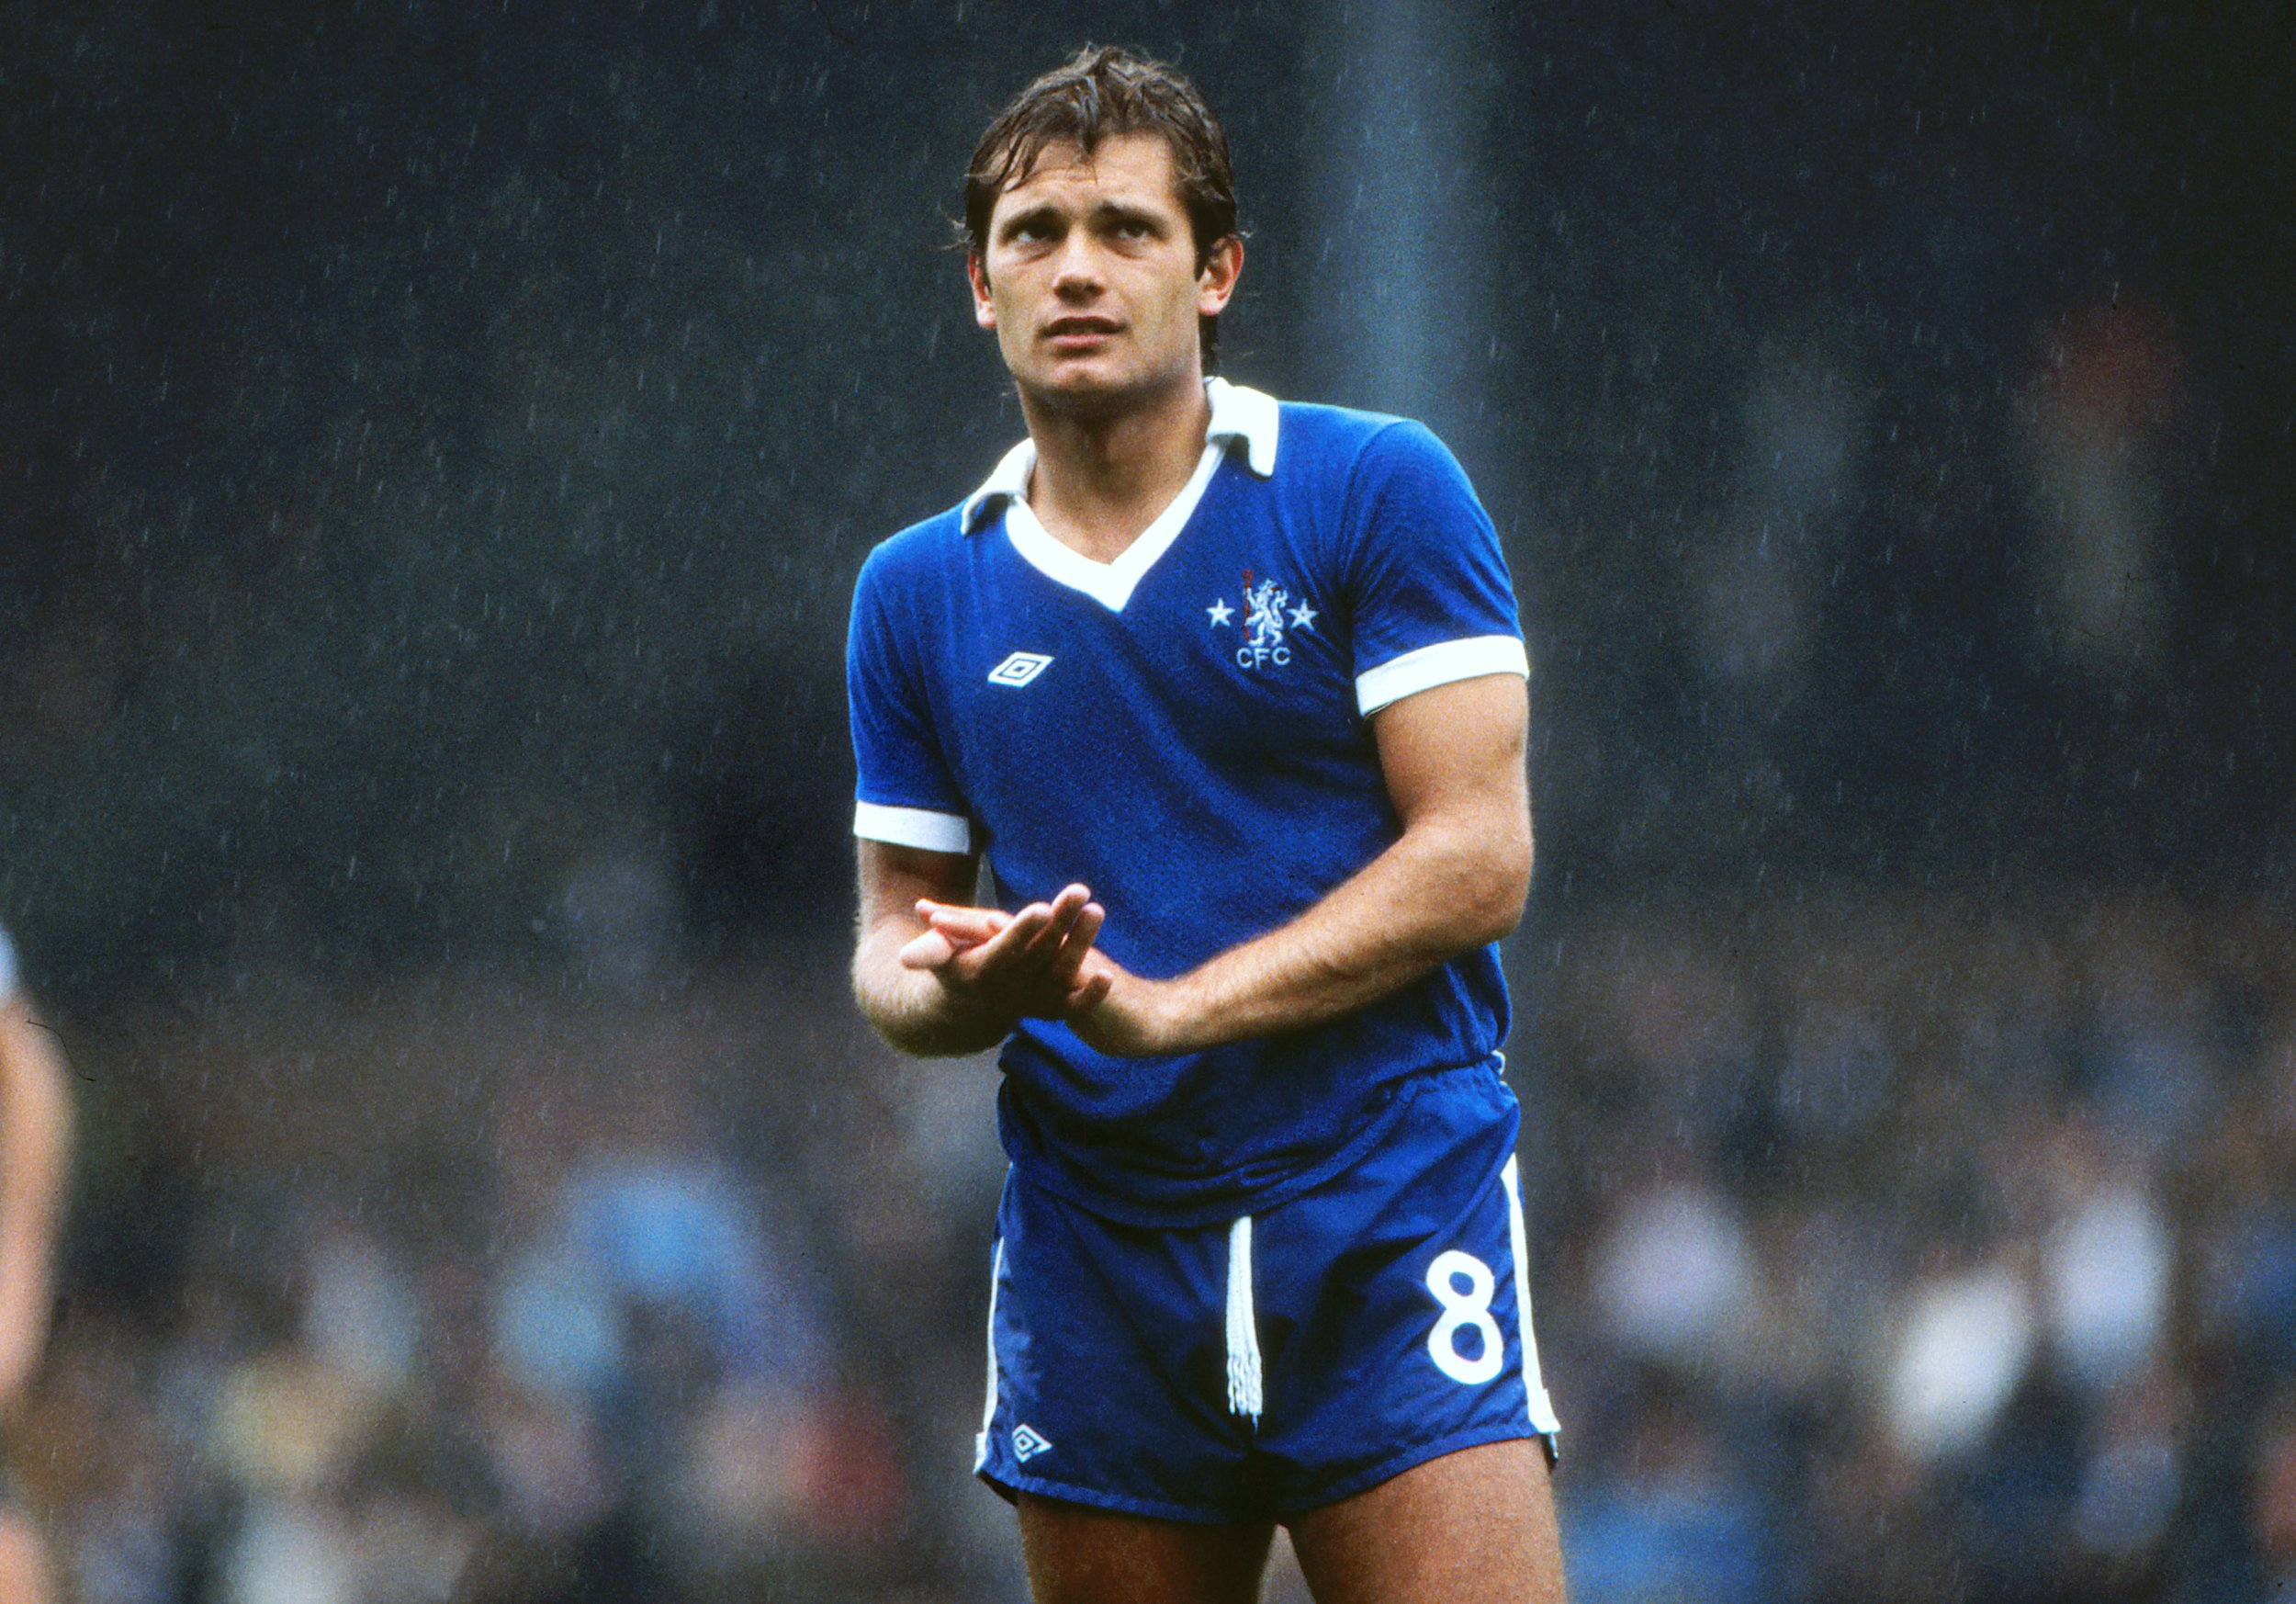 Chelsea should pay tribute to Ray Wilkins by beating West Ham, says Cesar Azpilicueta